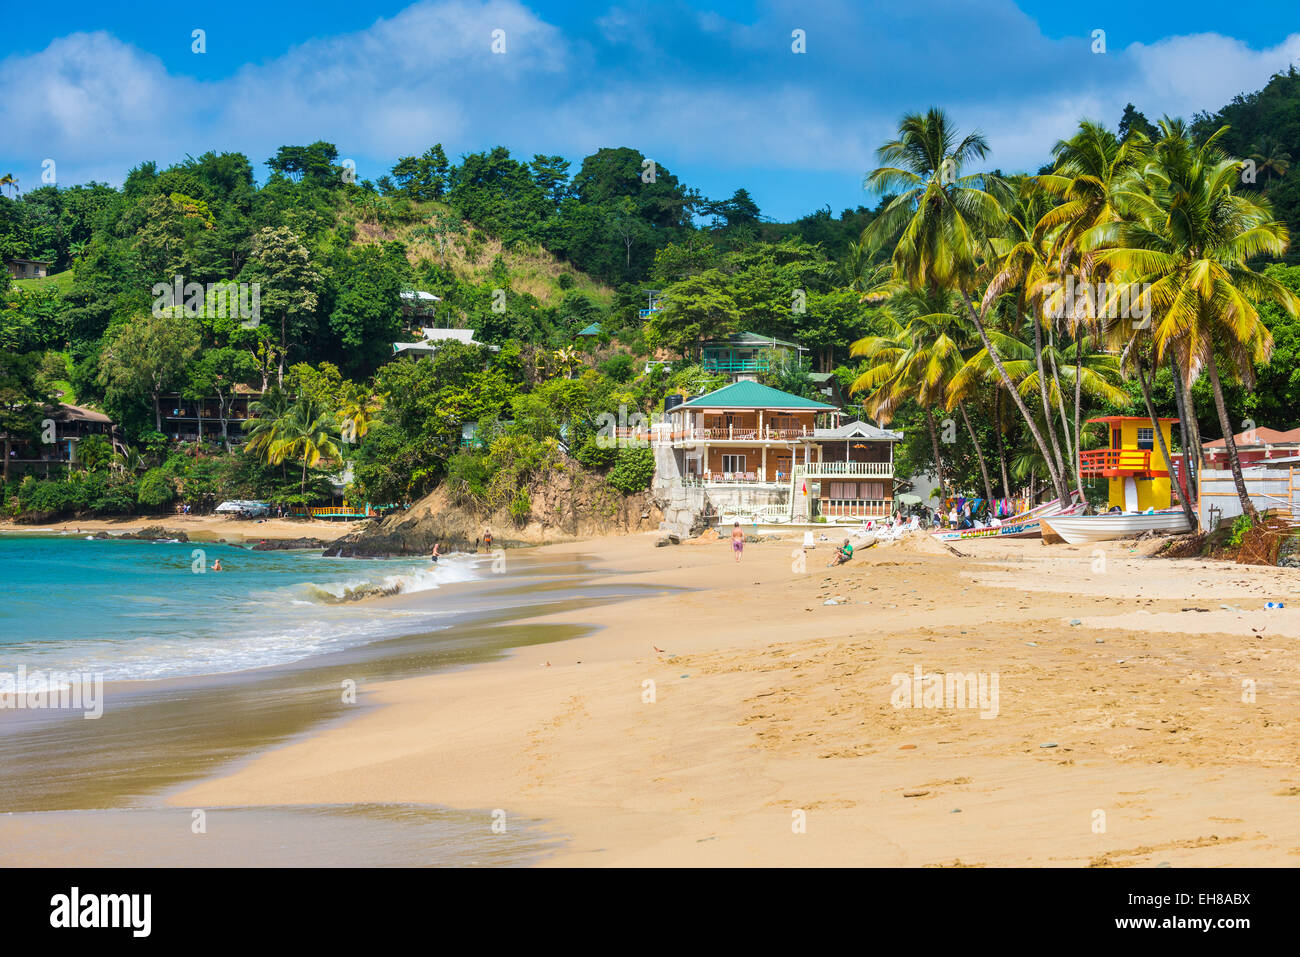 Beach of Castara,Tobago, Trinidad and Tobago, West Indies, Caribbean, Central America - Stock Image